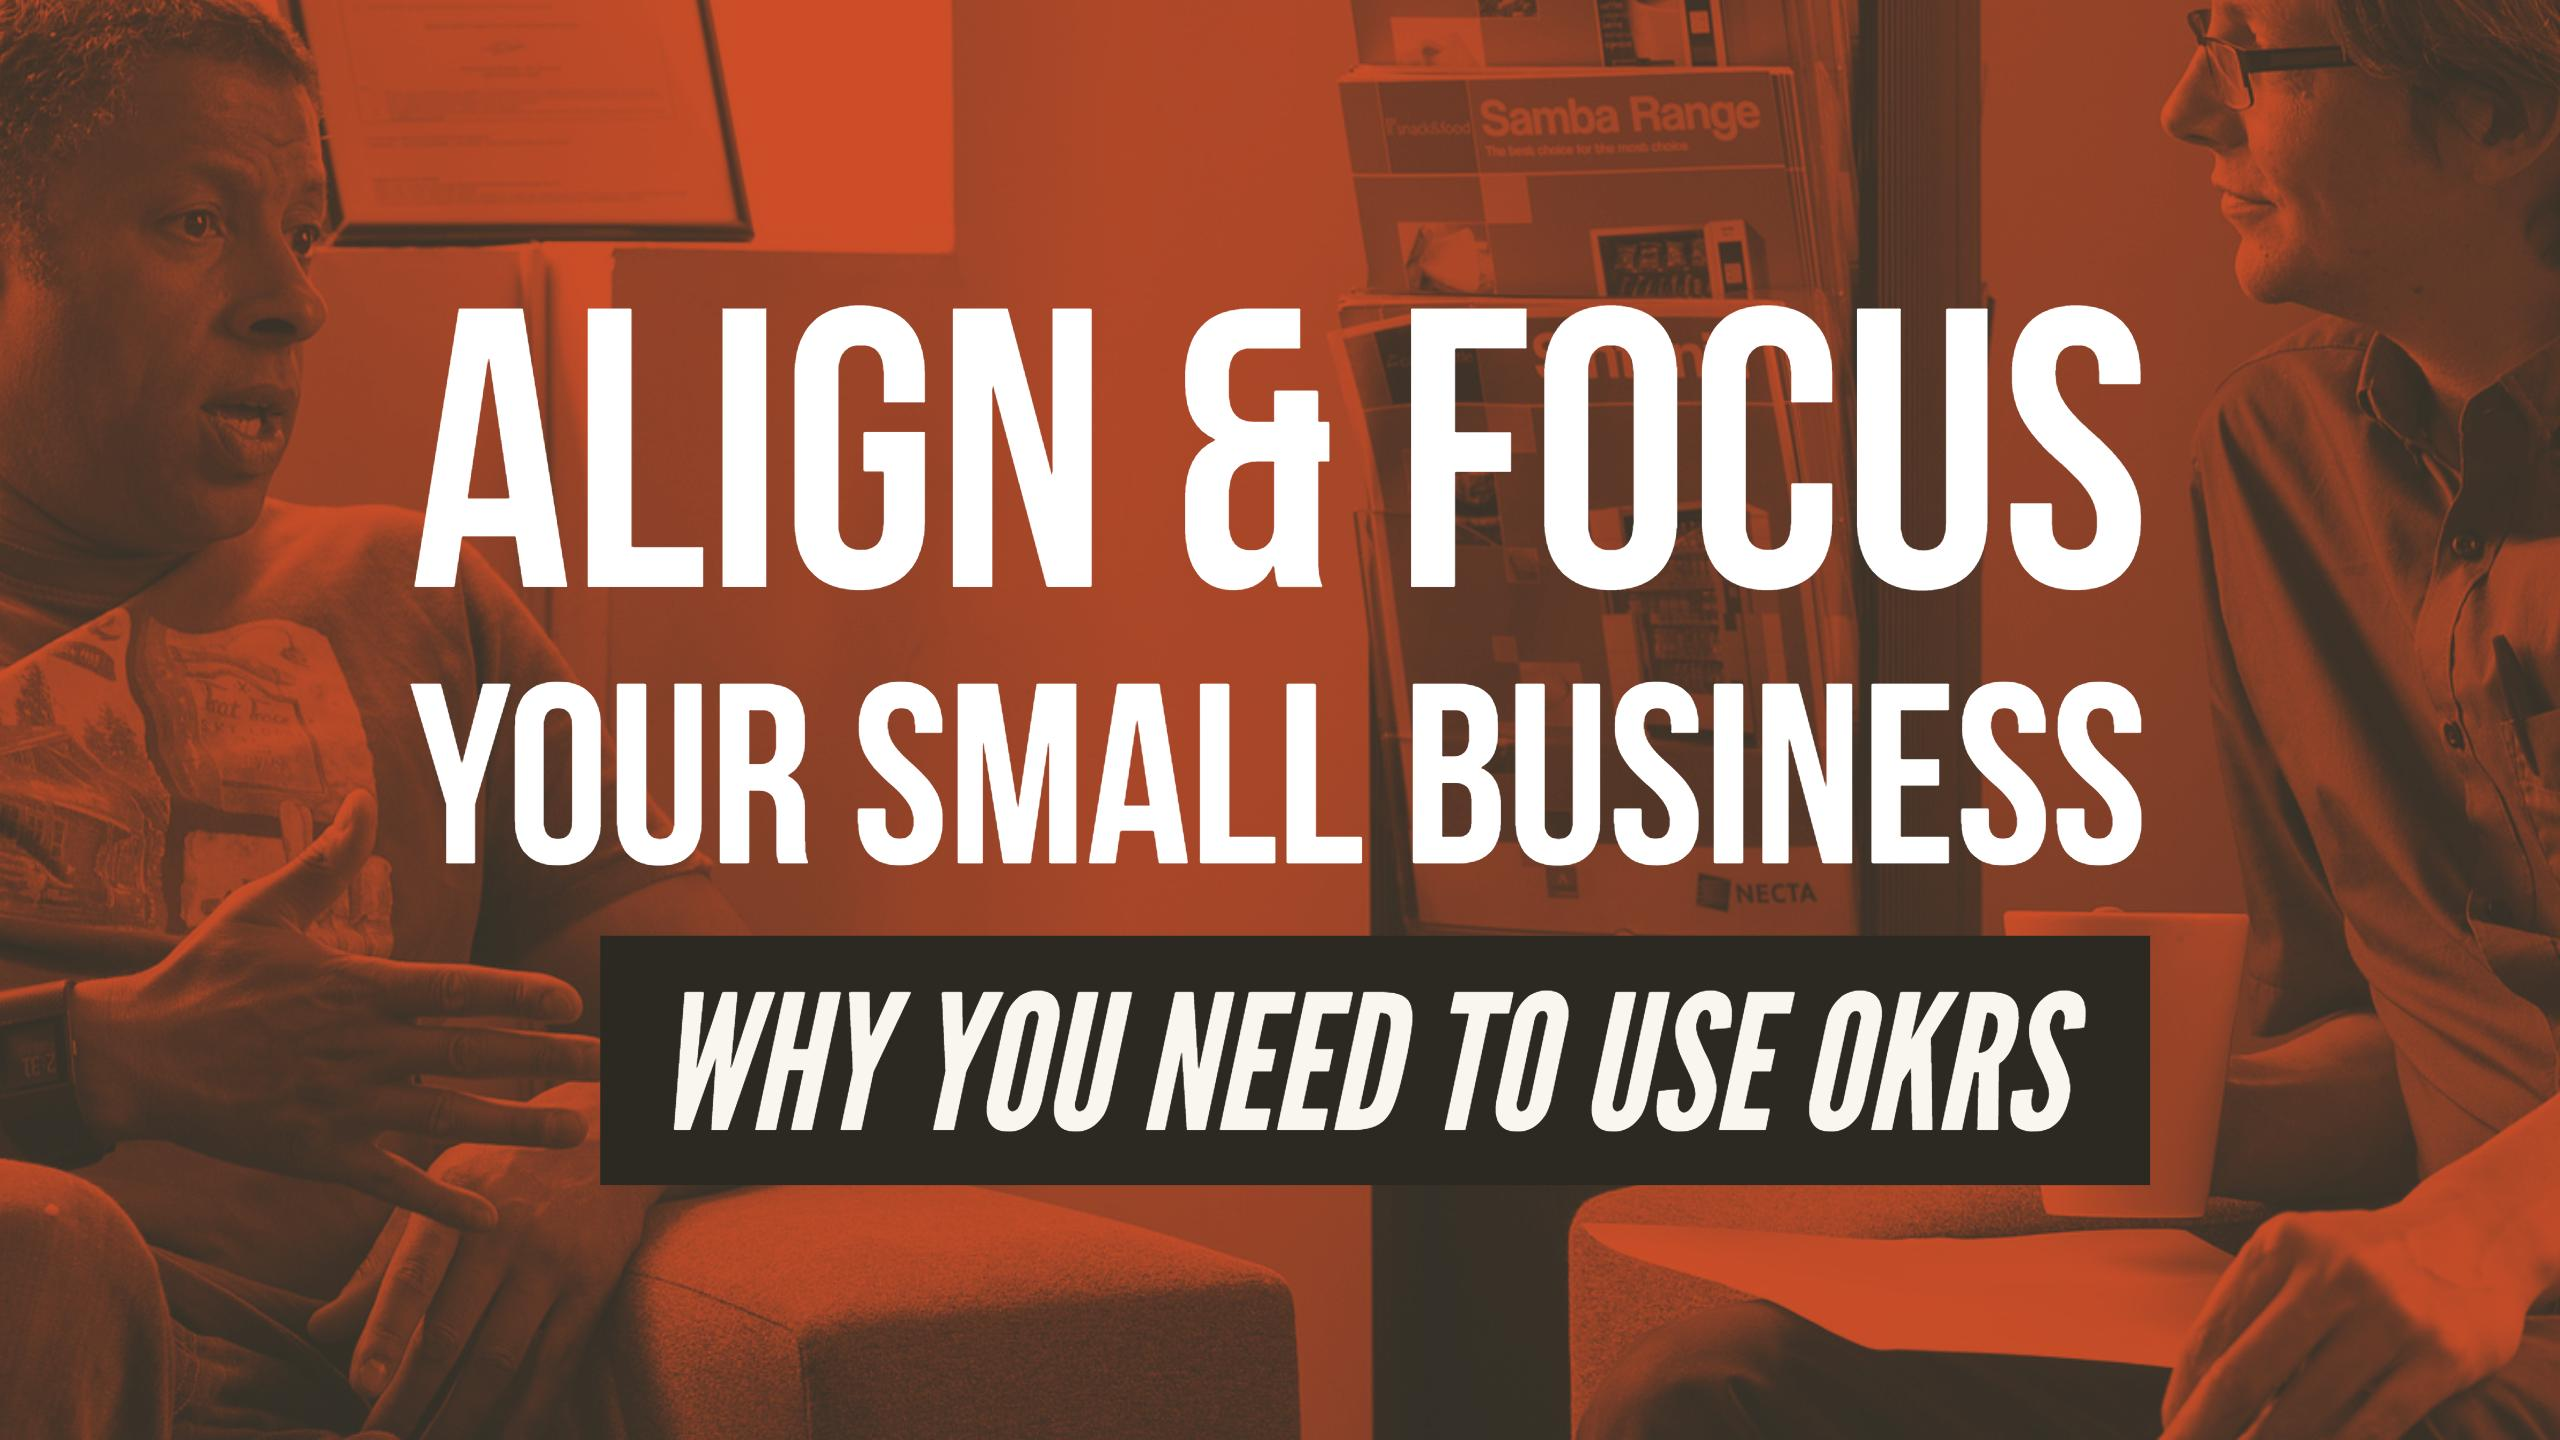 Align & Focus Your Small Business: Why You Need to Use OKRs